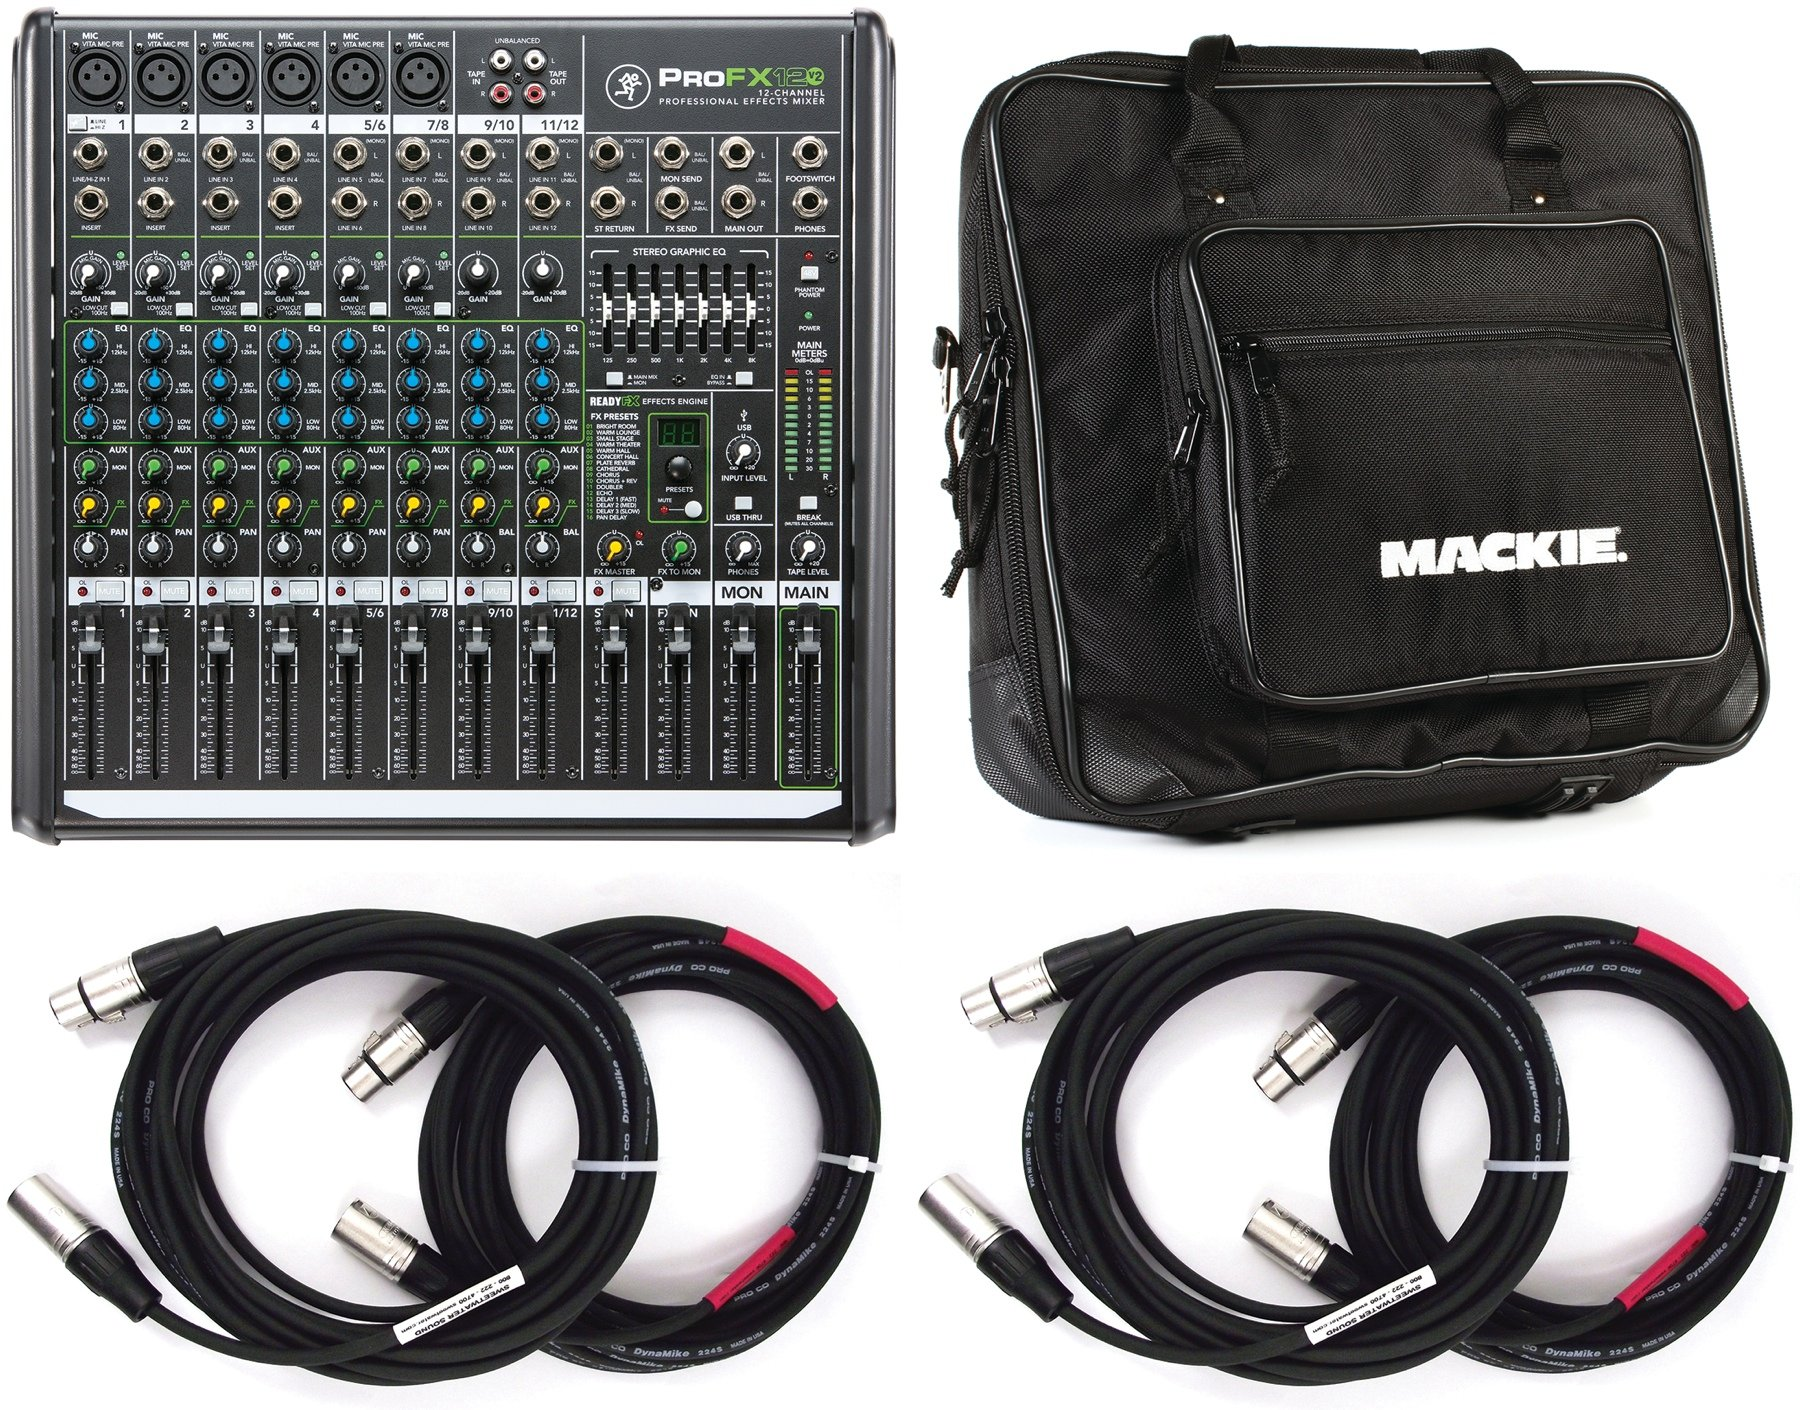 Mackie Profx12v2 Mixer With Usb And Effects Sweetwater Profx8 V2